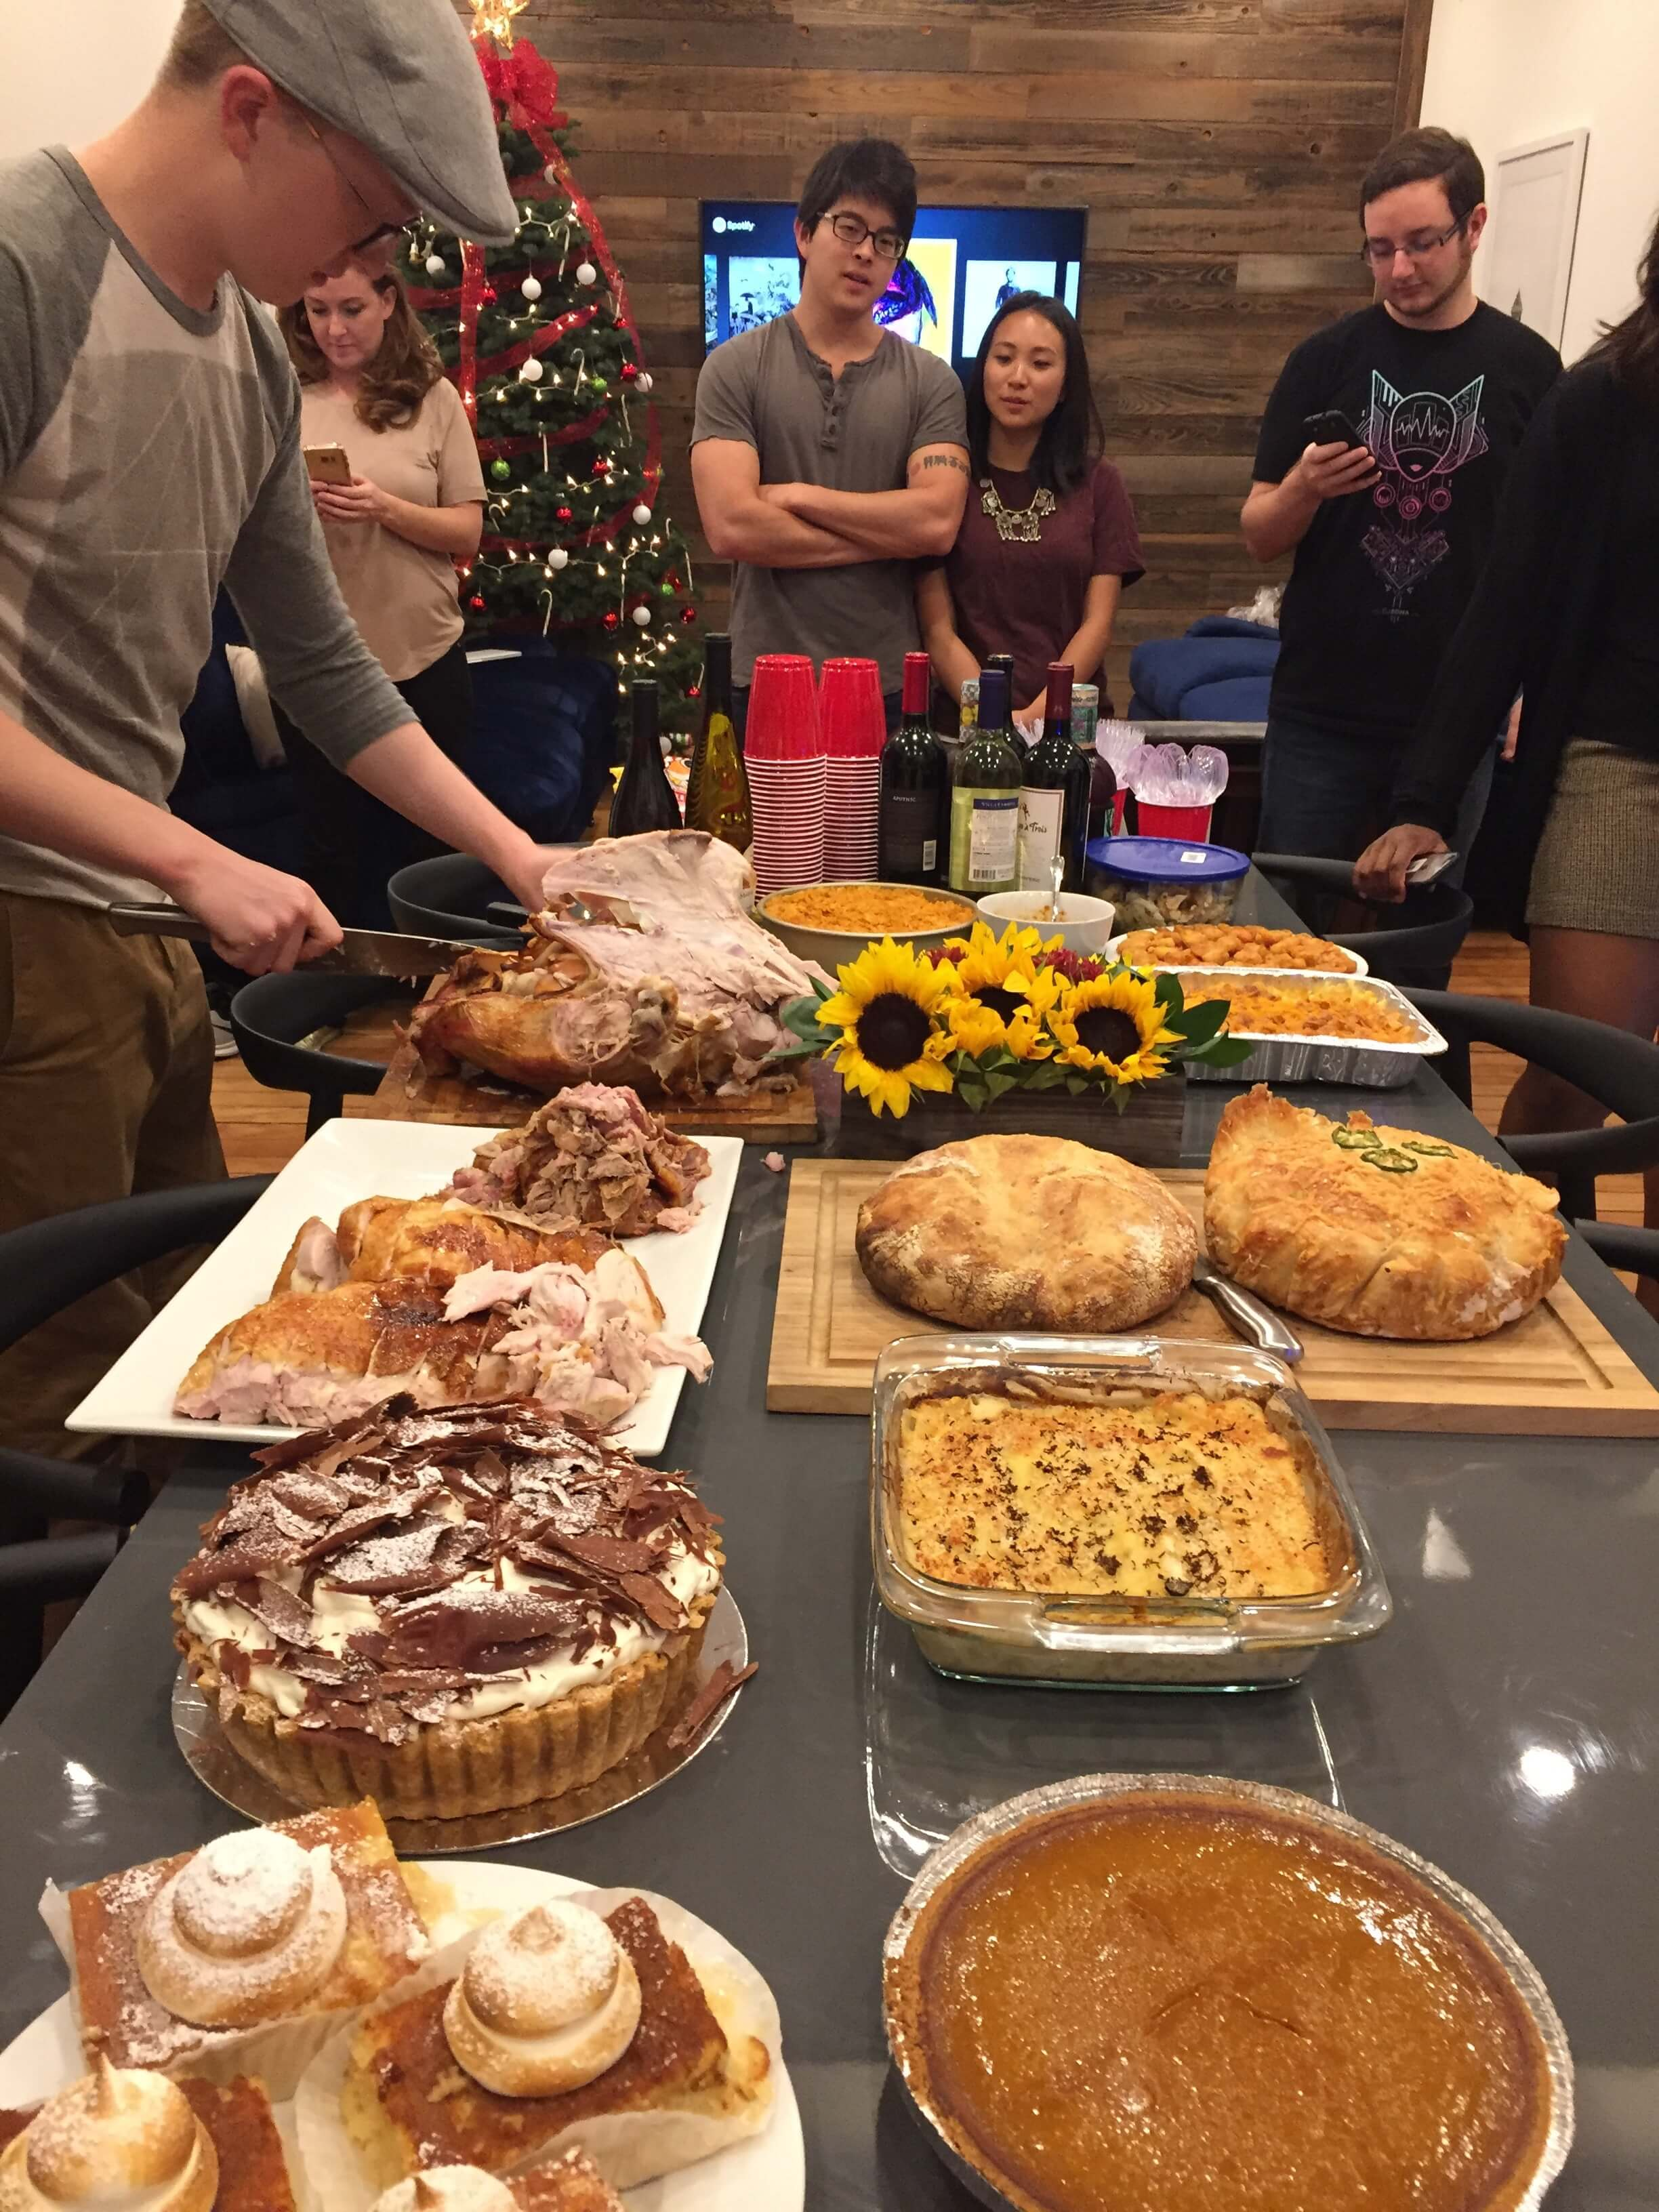 sfo-friendsgiving-food